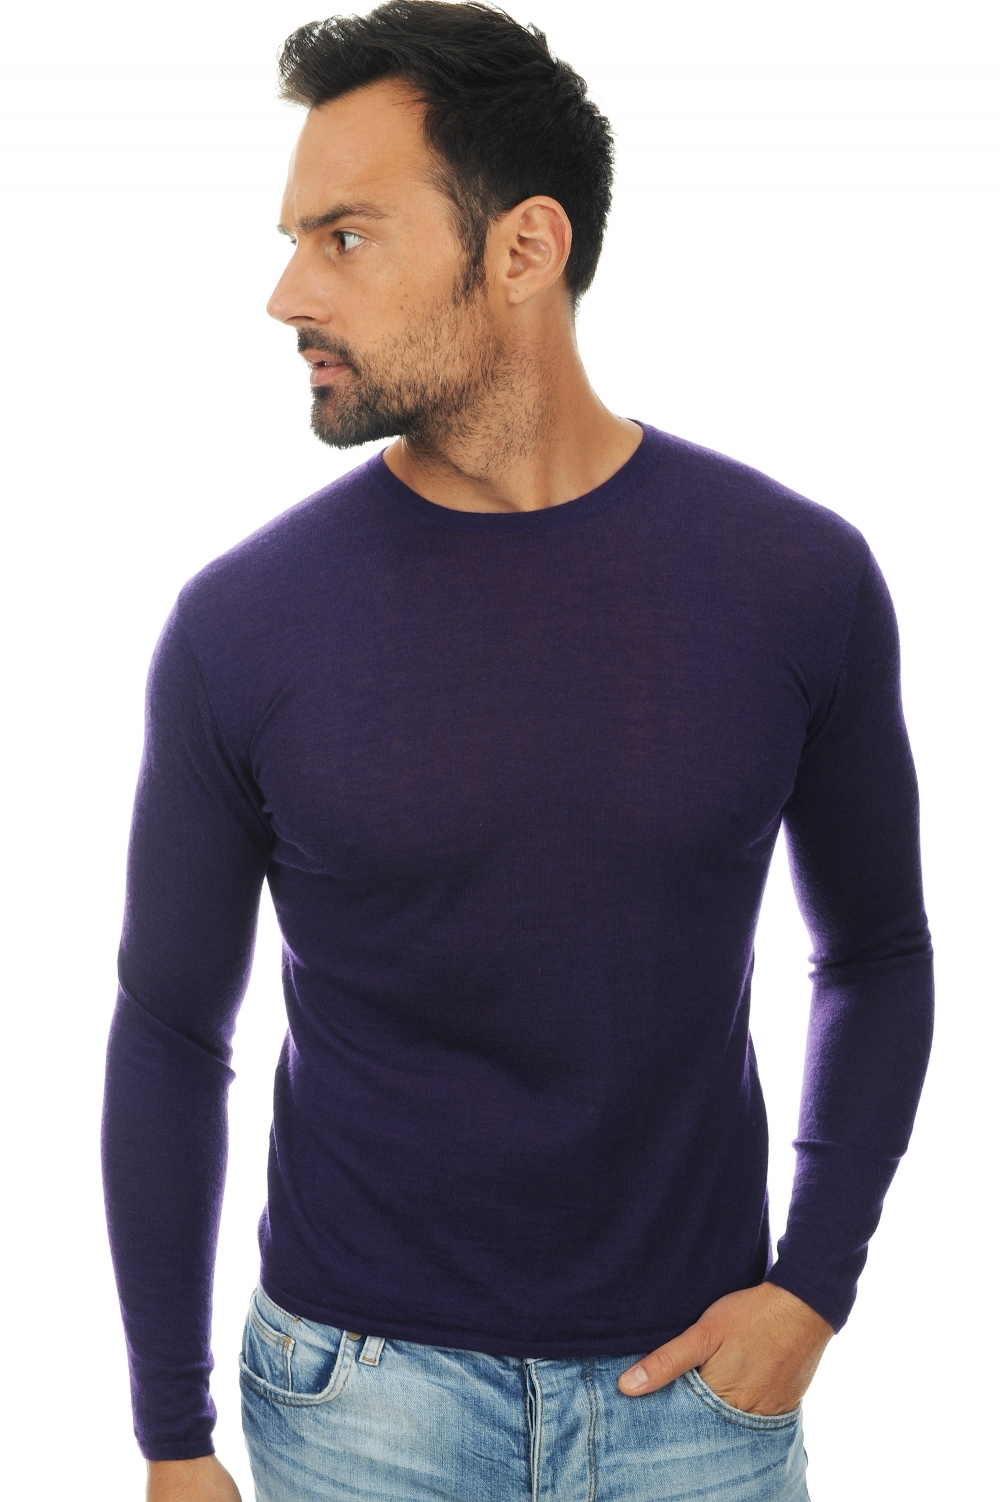 men round necks julduvet royal m